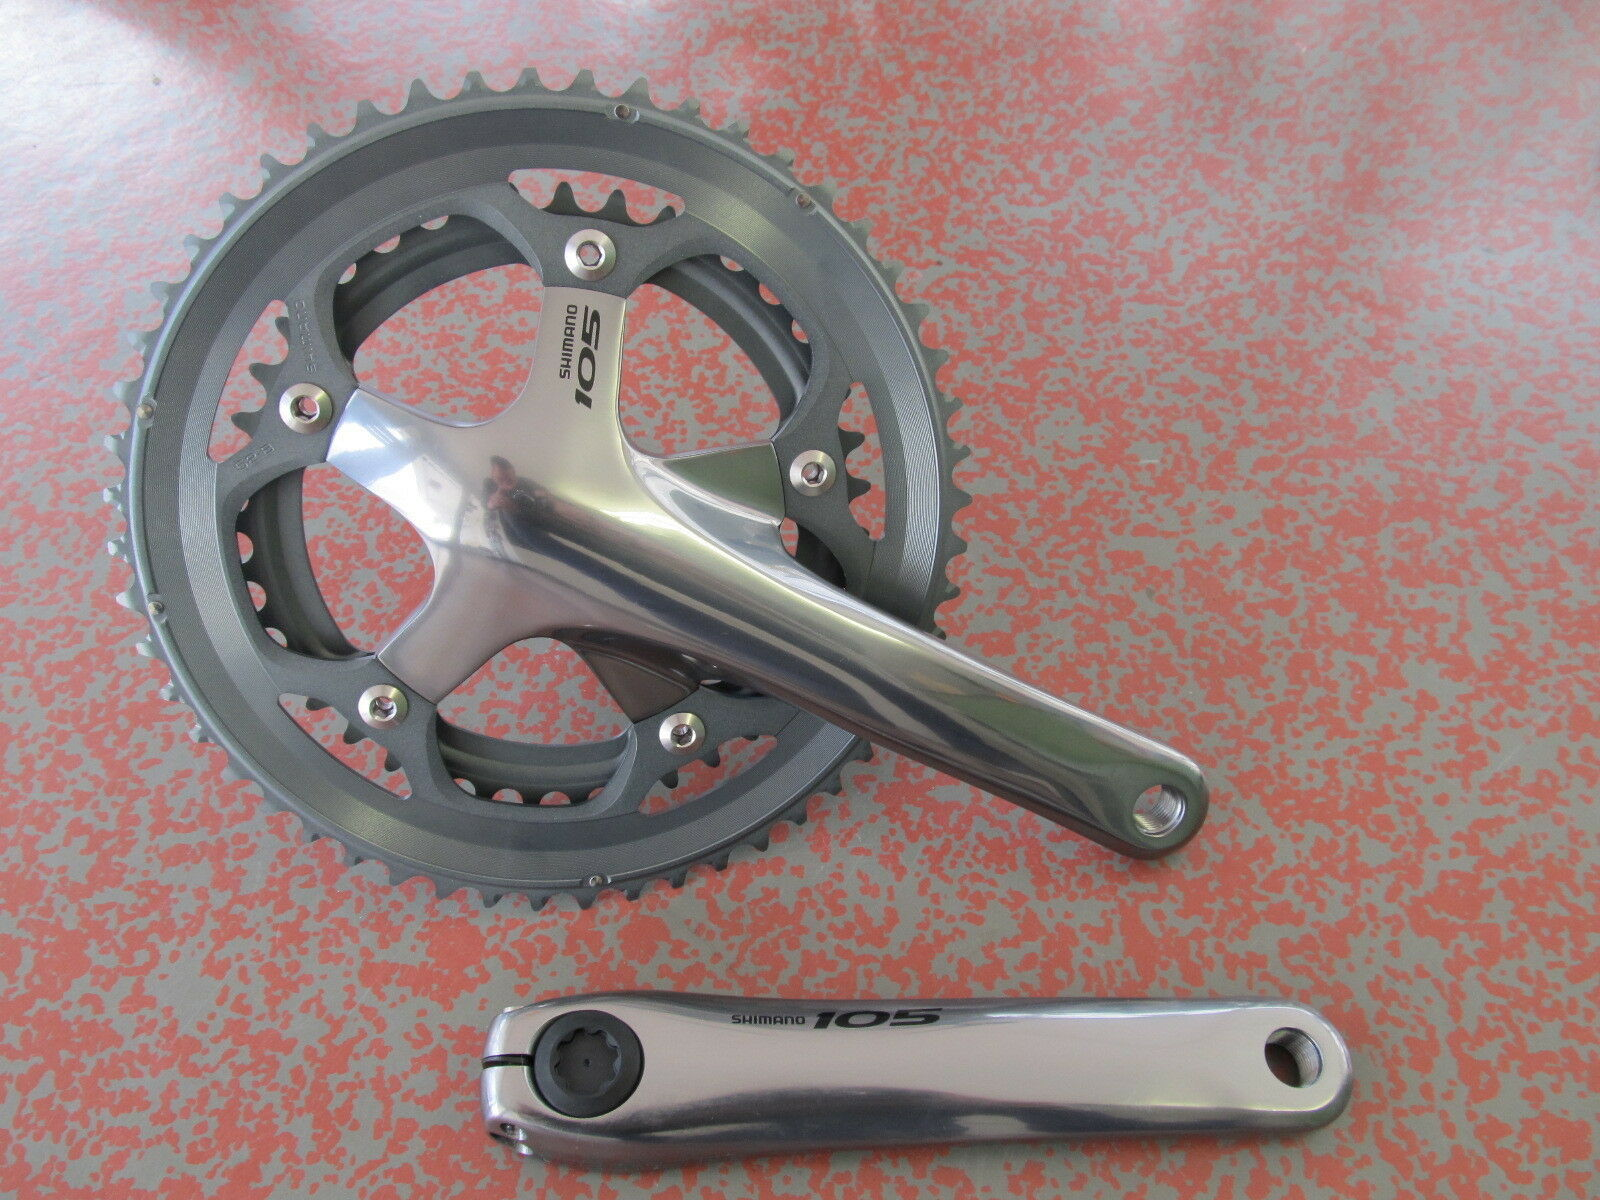 Shimano 105 FC-5600 Kurbelgarnitur  172,5mm 52-39 NEU silver + BSA Innenlager  fast delivery and free shipping on all orders